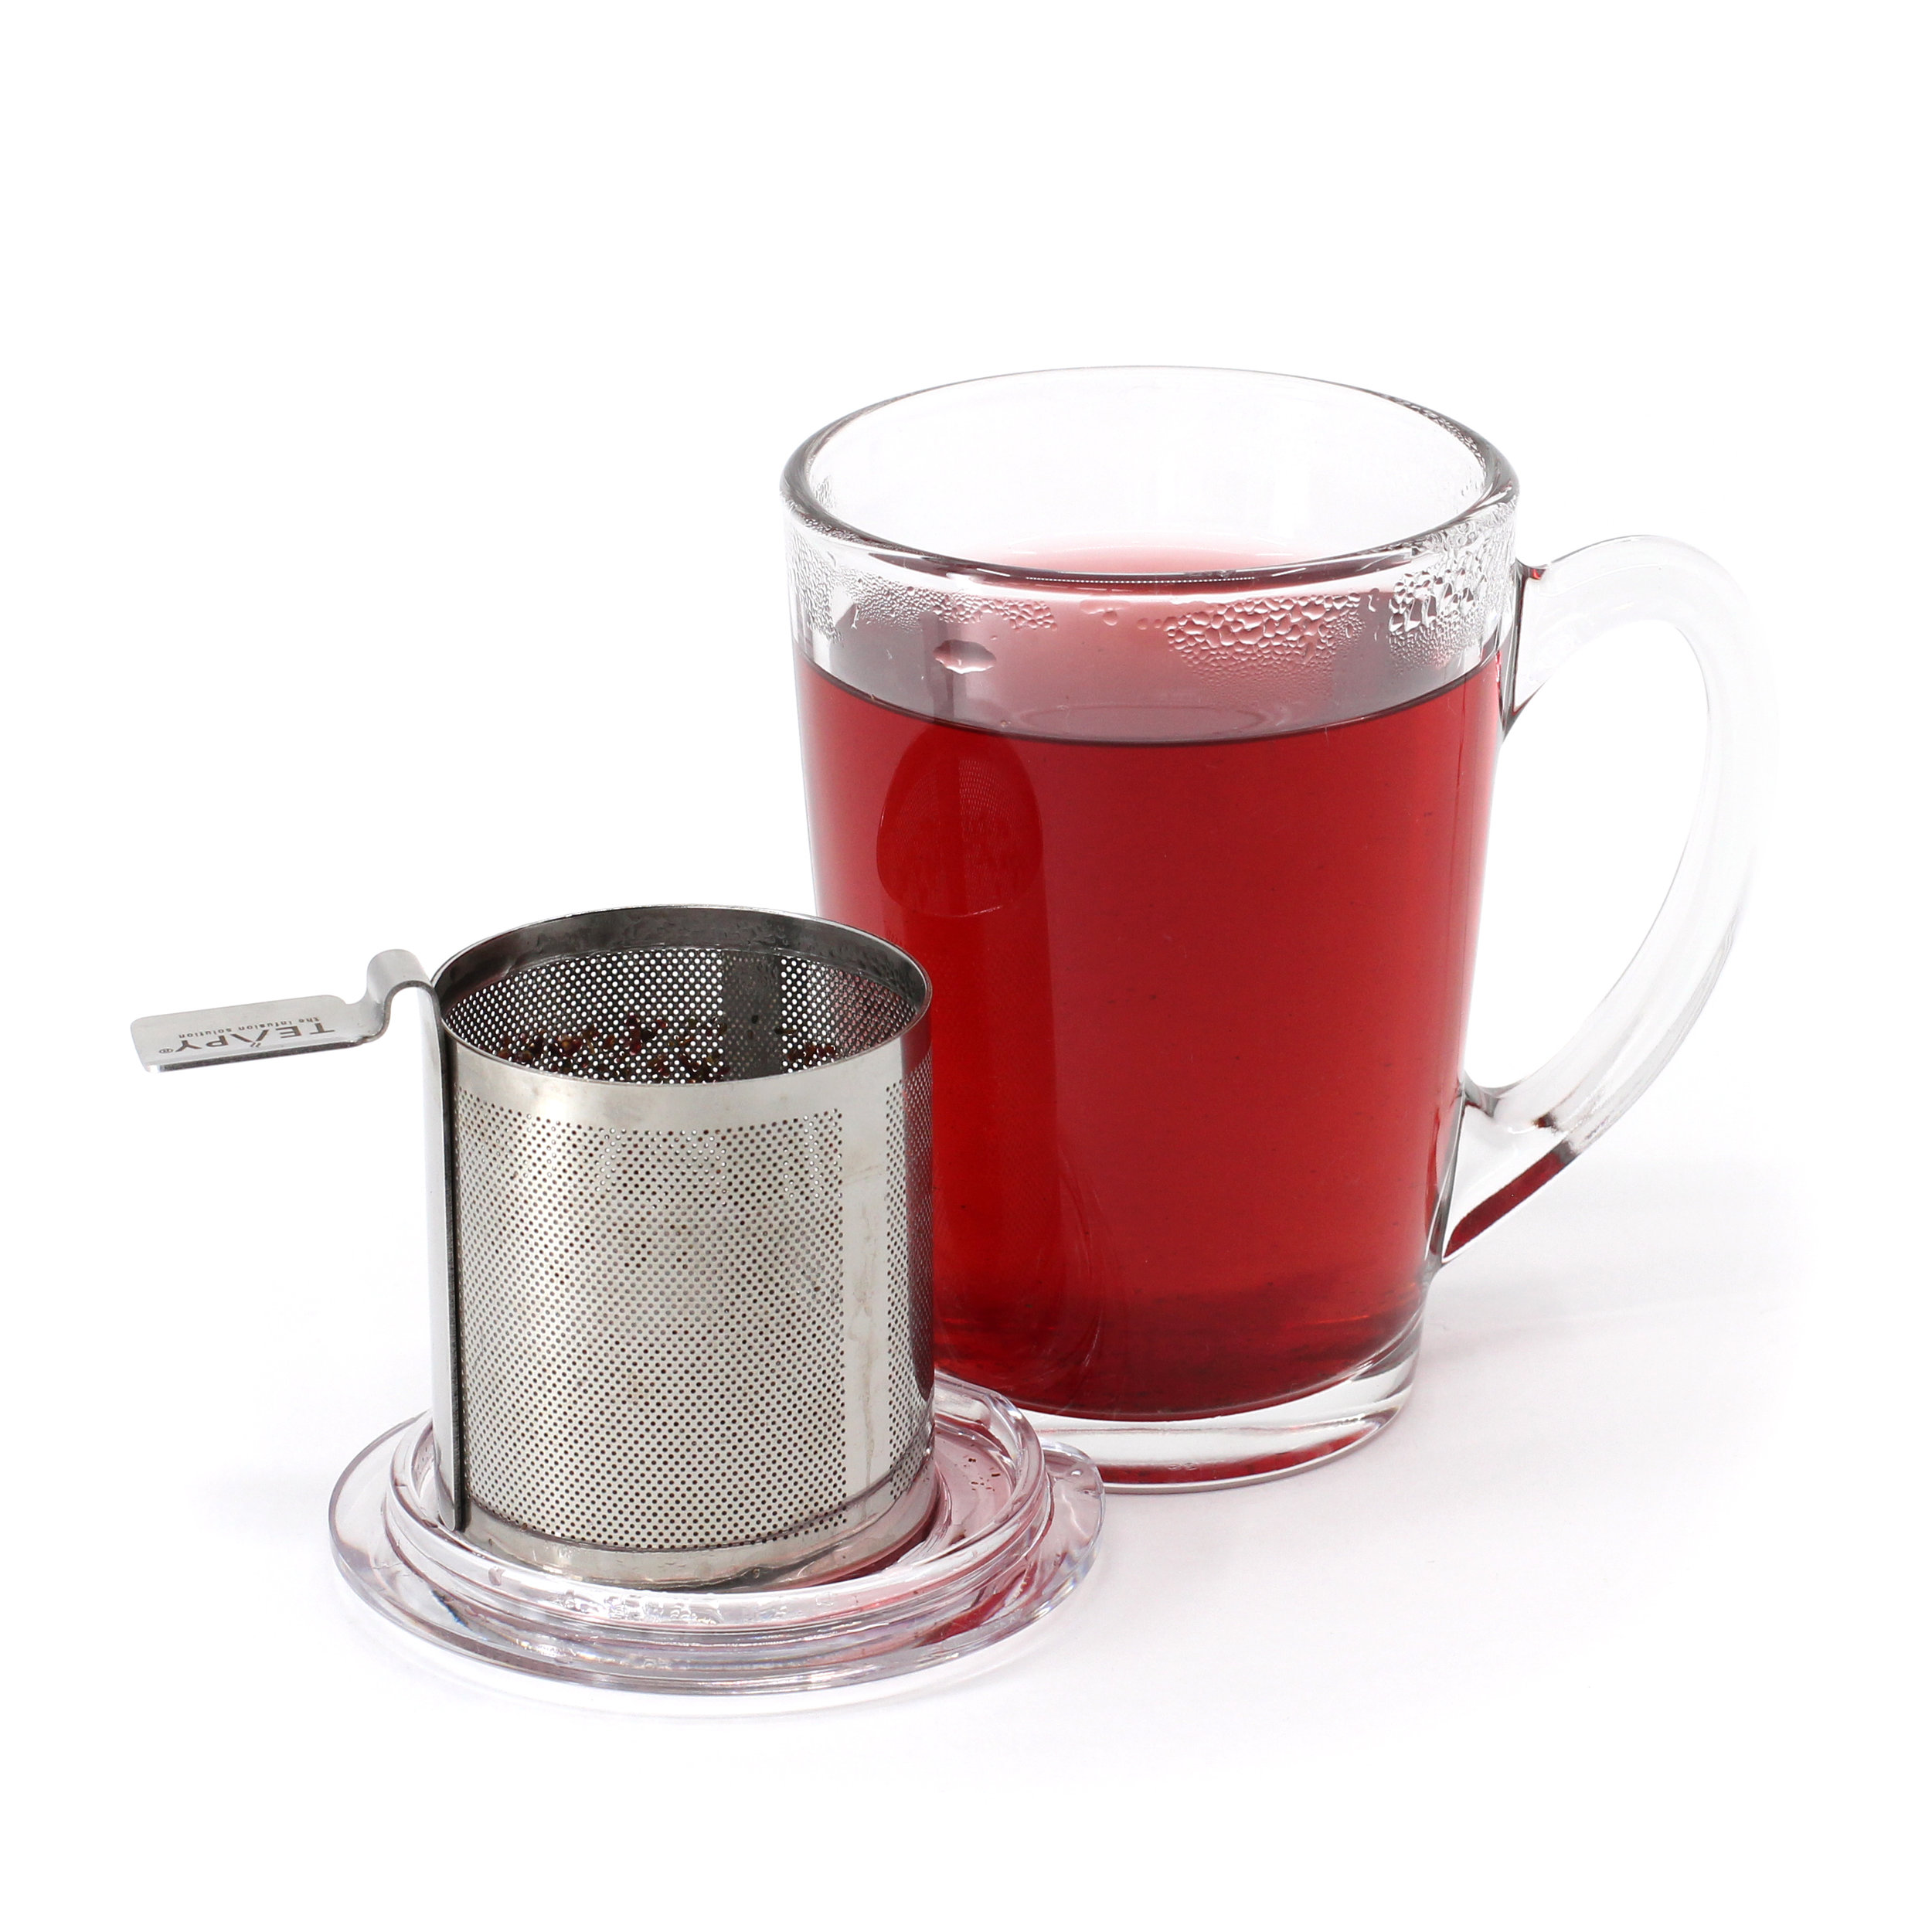 TEAPY® T-4-1™ | TEAPY® Infuser | Loose Tea Infusion